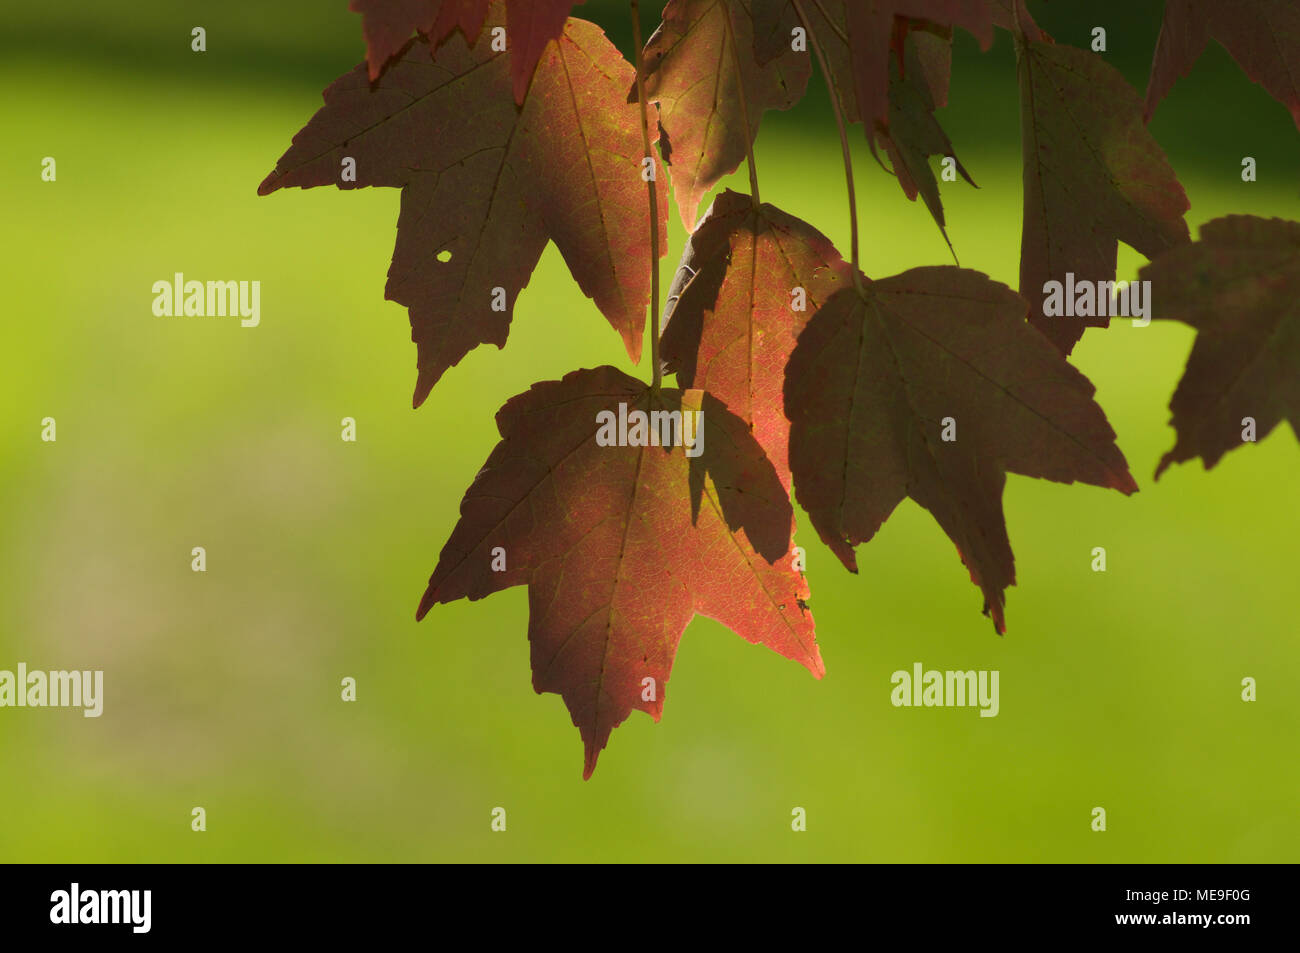 Leaf Changing Color Close Up Stock Photos & Leaf Changing Color ...